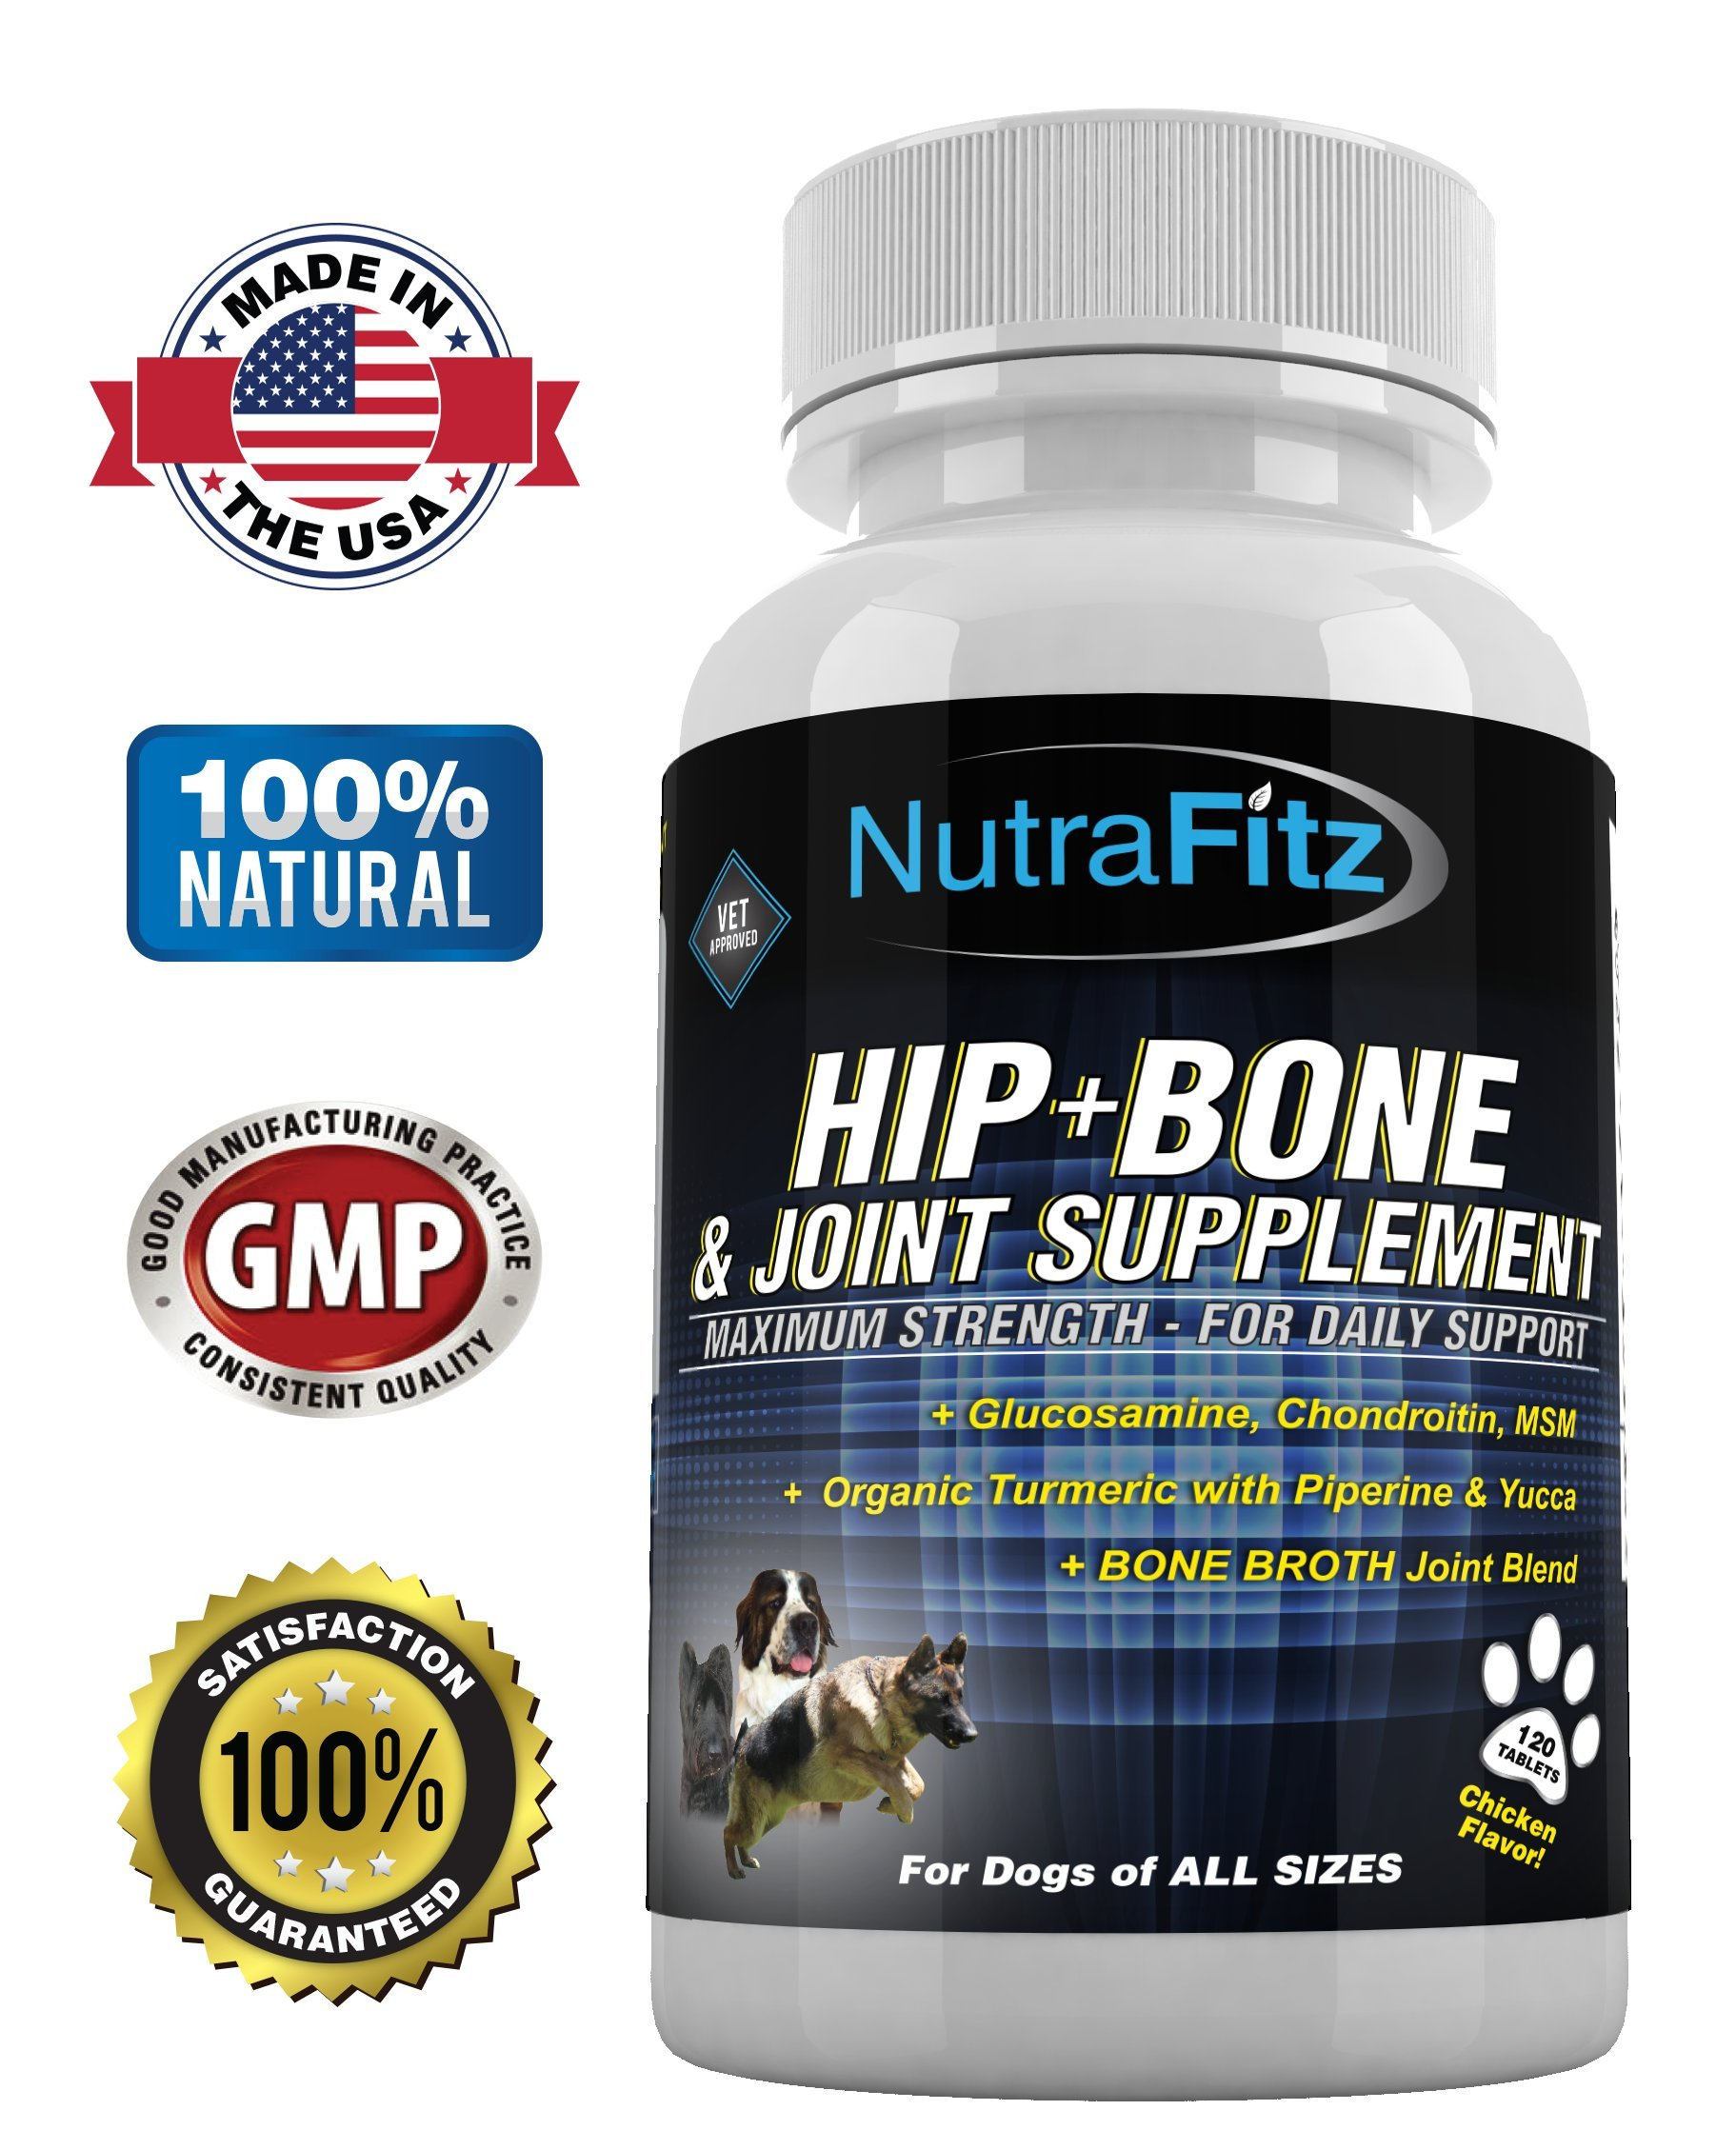 NutraFitz Hip Bone and Joint Supplement for Dogs -Glucosamine Chondroitin for Dogs, MSM, Organic Turmeric - Hip Dysplasia, ACLs - Best Dog Joint Supplement for Joint Support - 120 Tablets